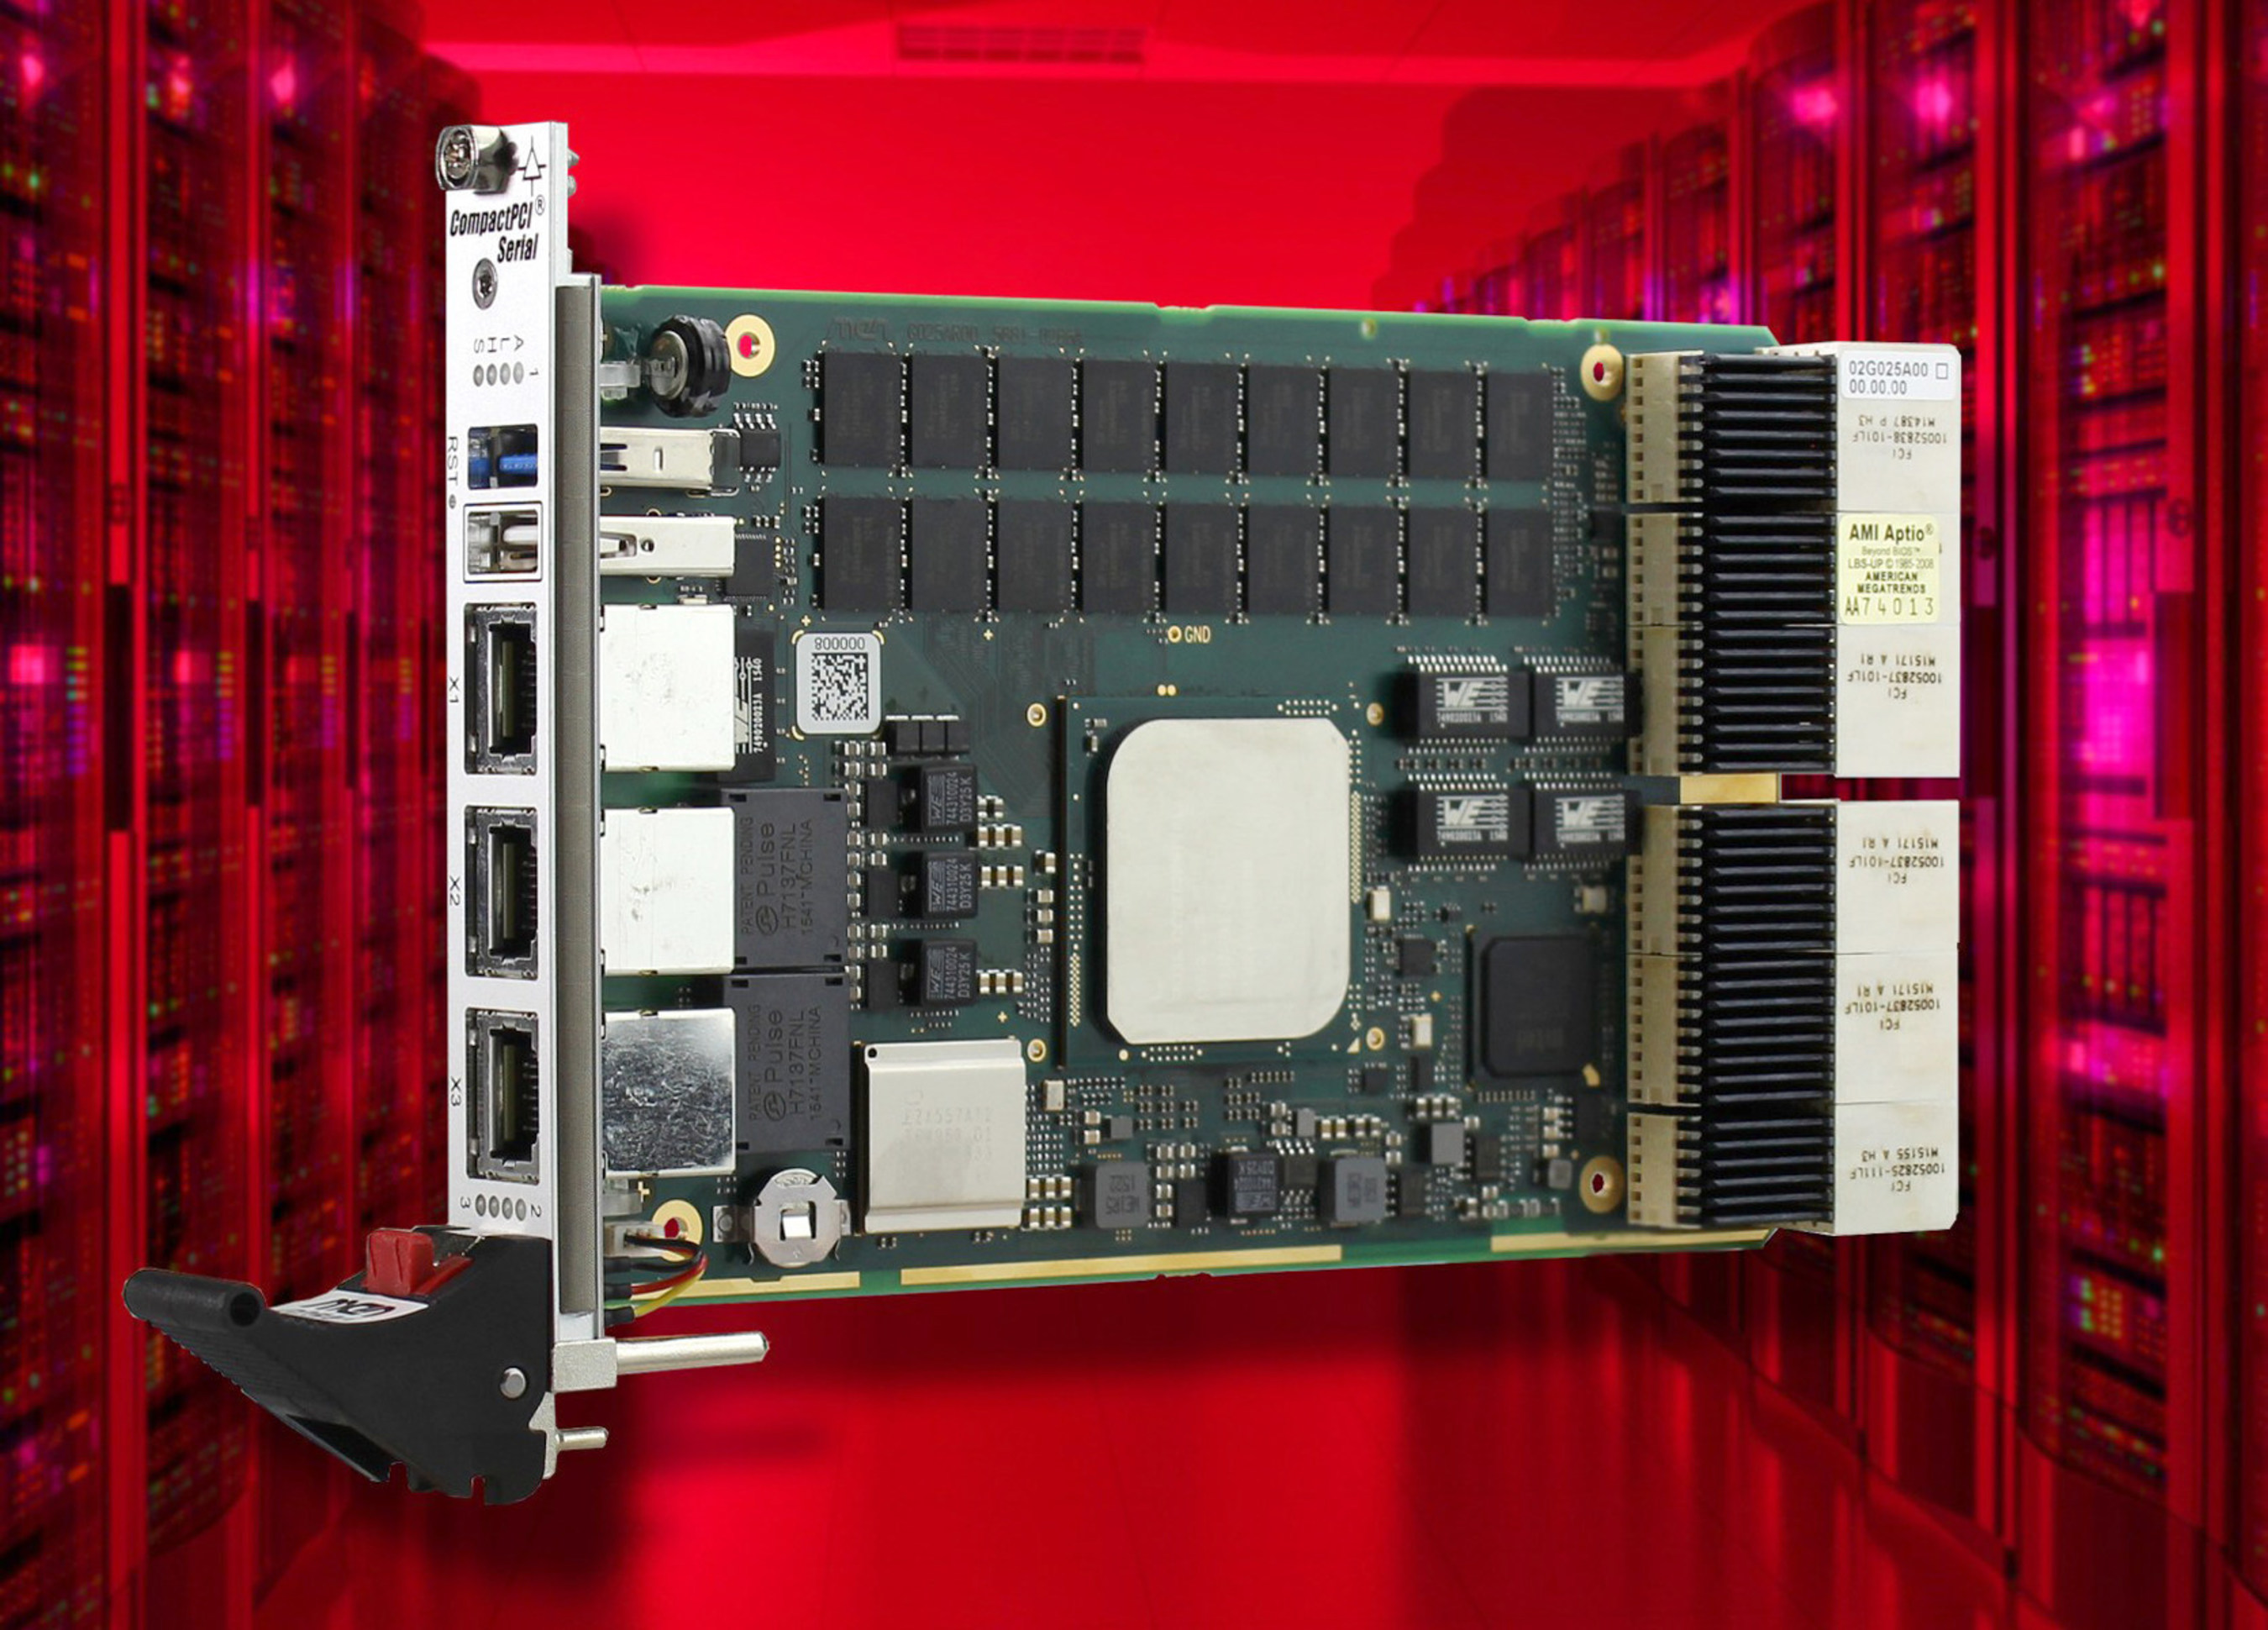 High Bandwidth, High Performance 3U CompactPCI Serial Board First in New Series from MEN Micro